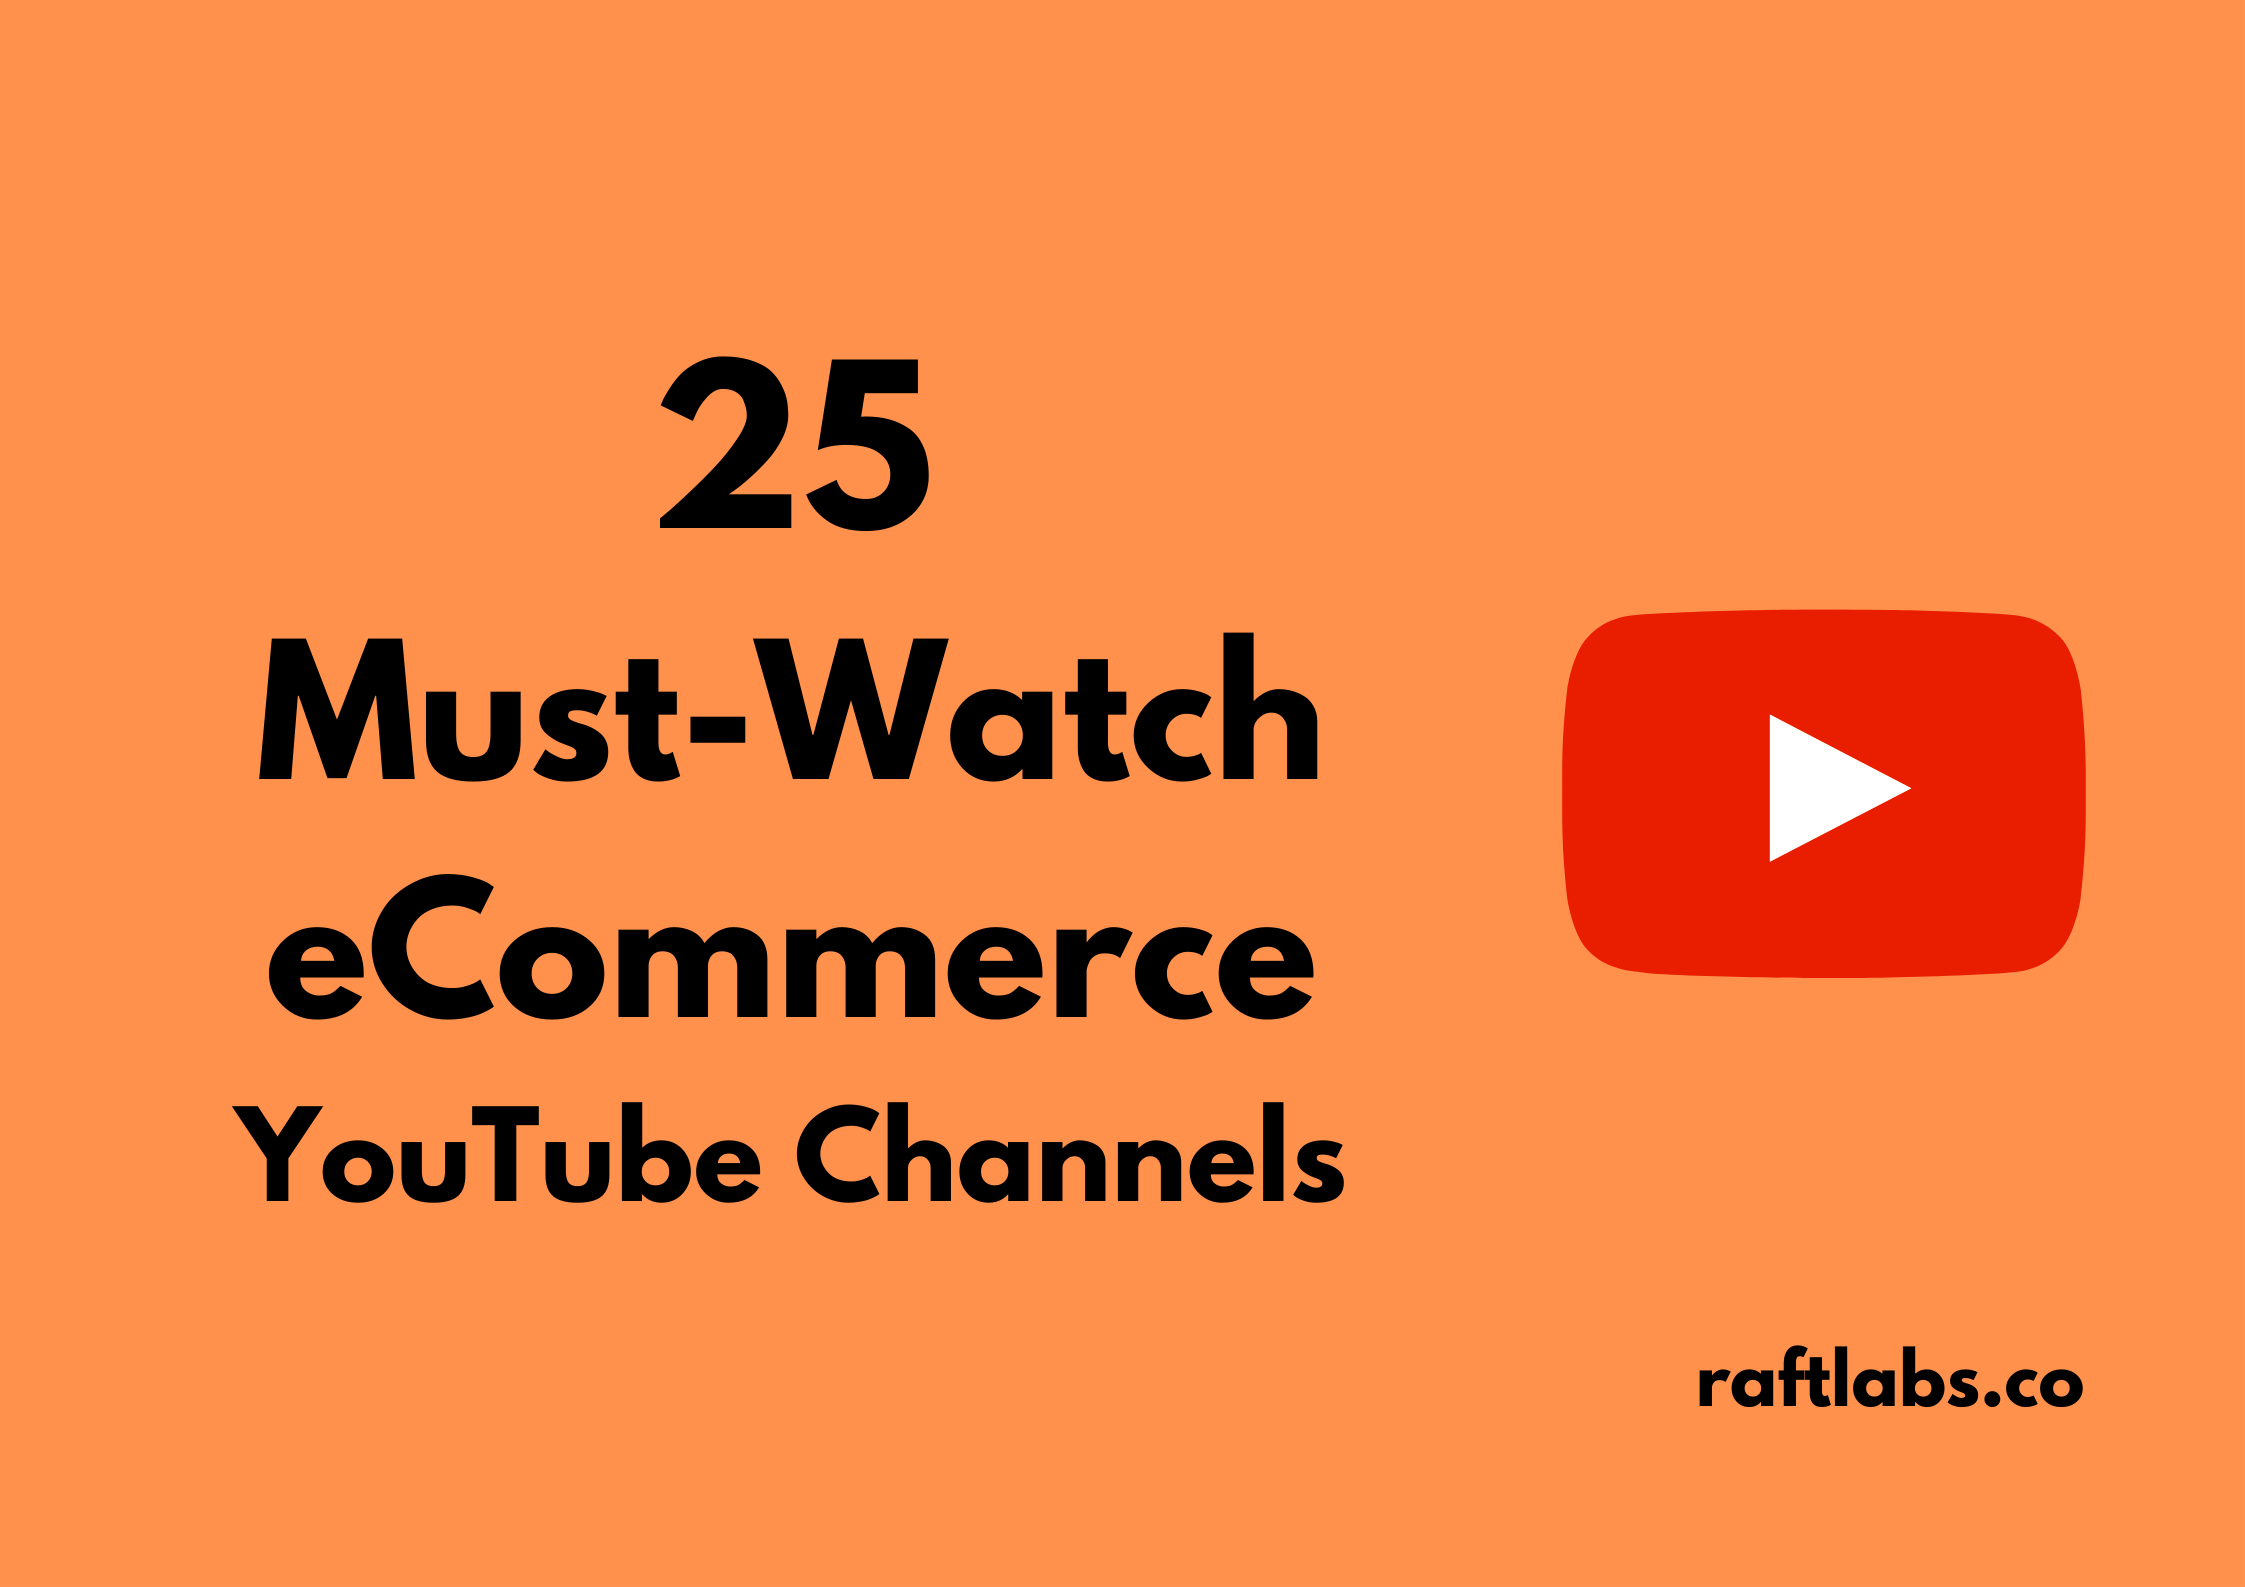 Handpicked list of best eCommerce YouTube Channels| raftlabs